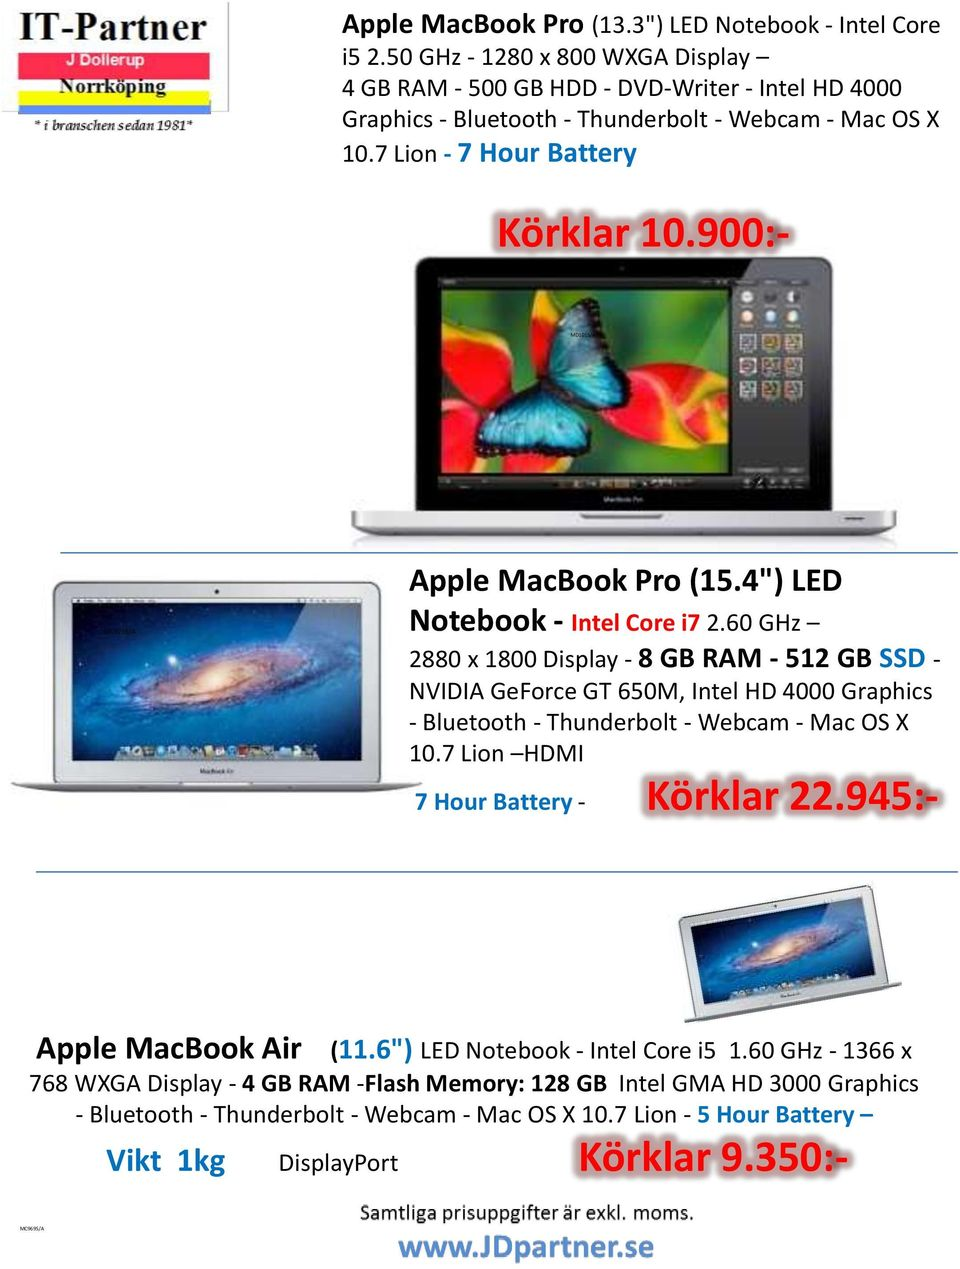 "900:- MD101S/A MC976S/A Apple MacBook Pro (15.4"") LED Notebook - Intel Core i7 2."